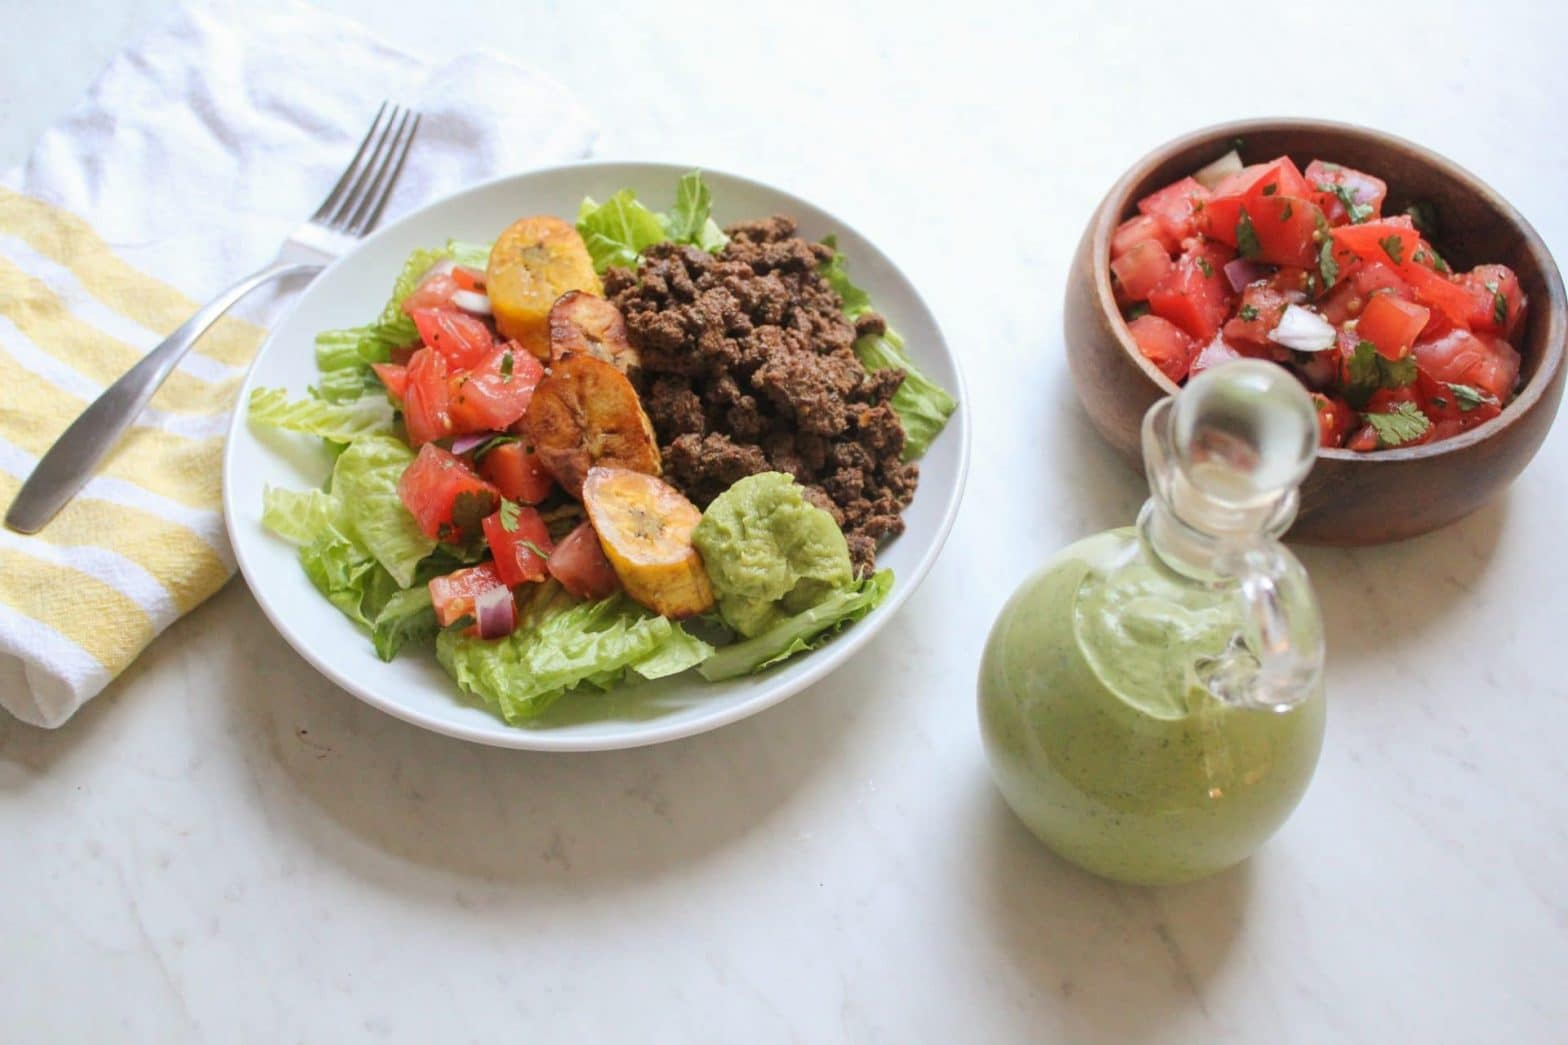 Paleo Taco Salad Recipe with Green Goddess Dressing